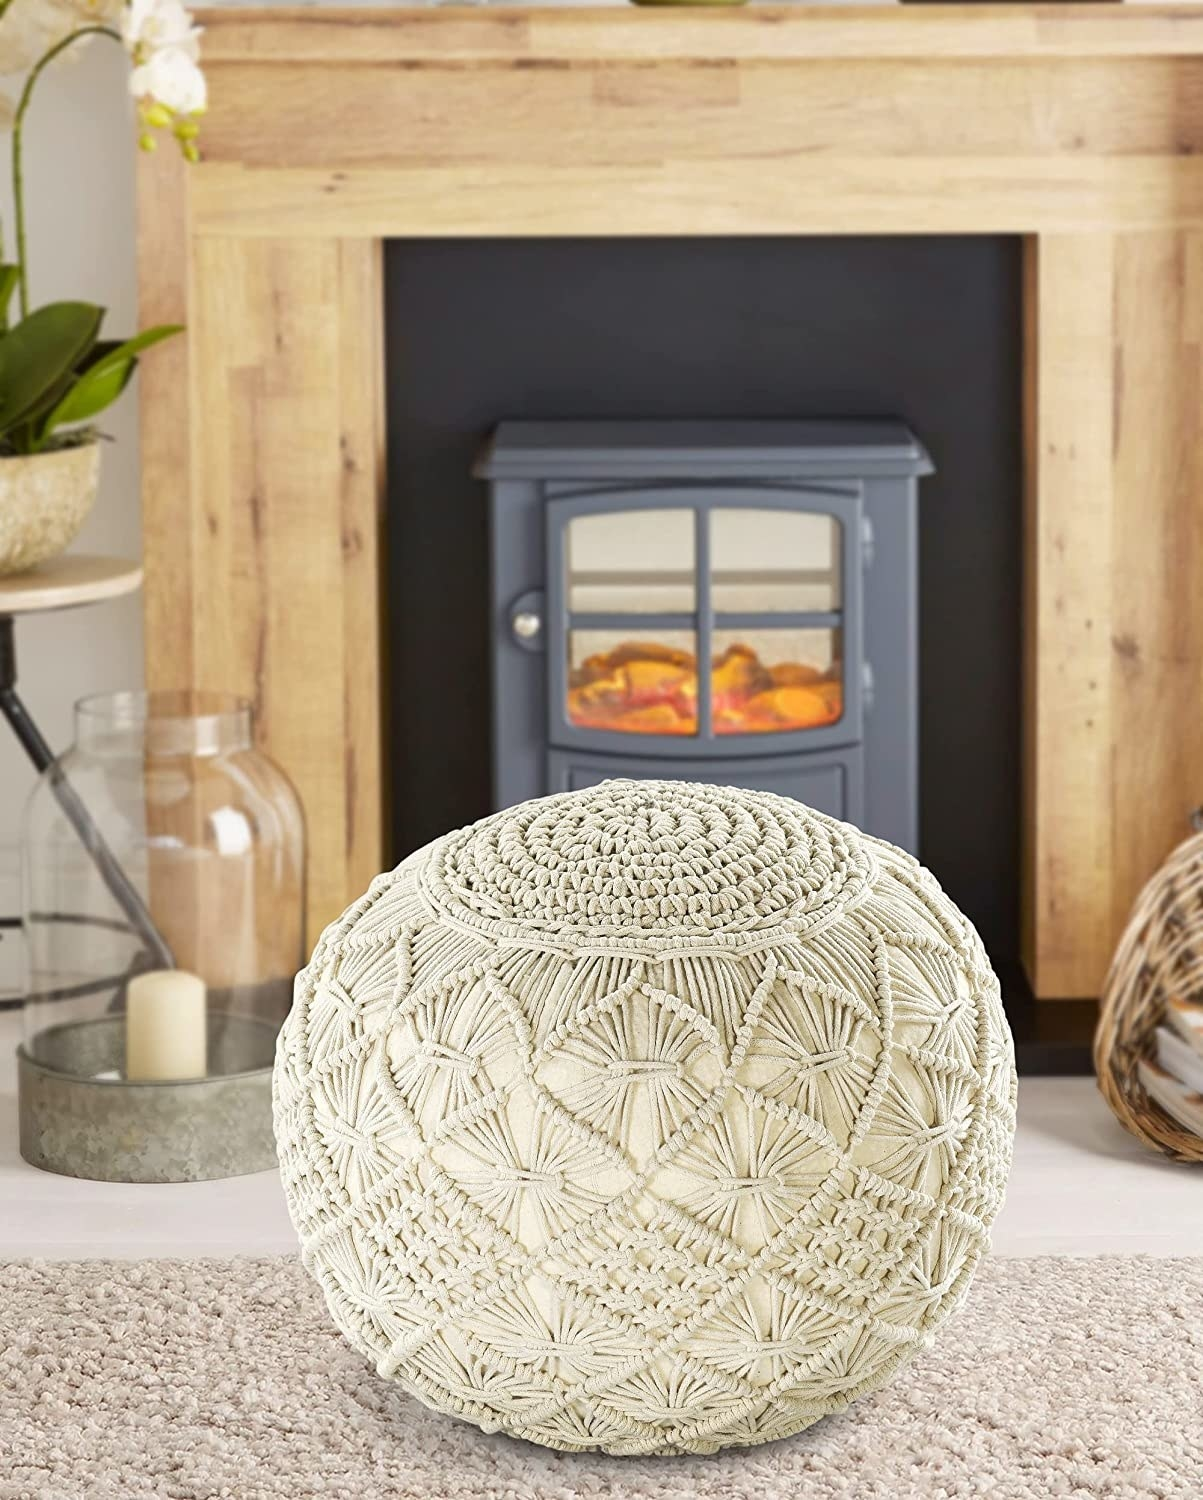 A knitted beige macrame inspired pouffe